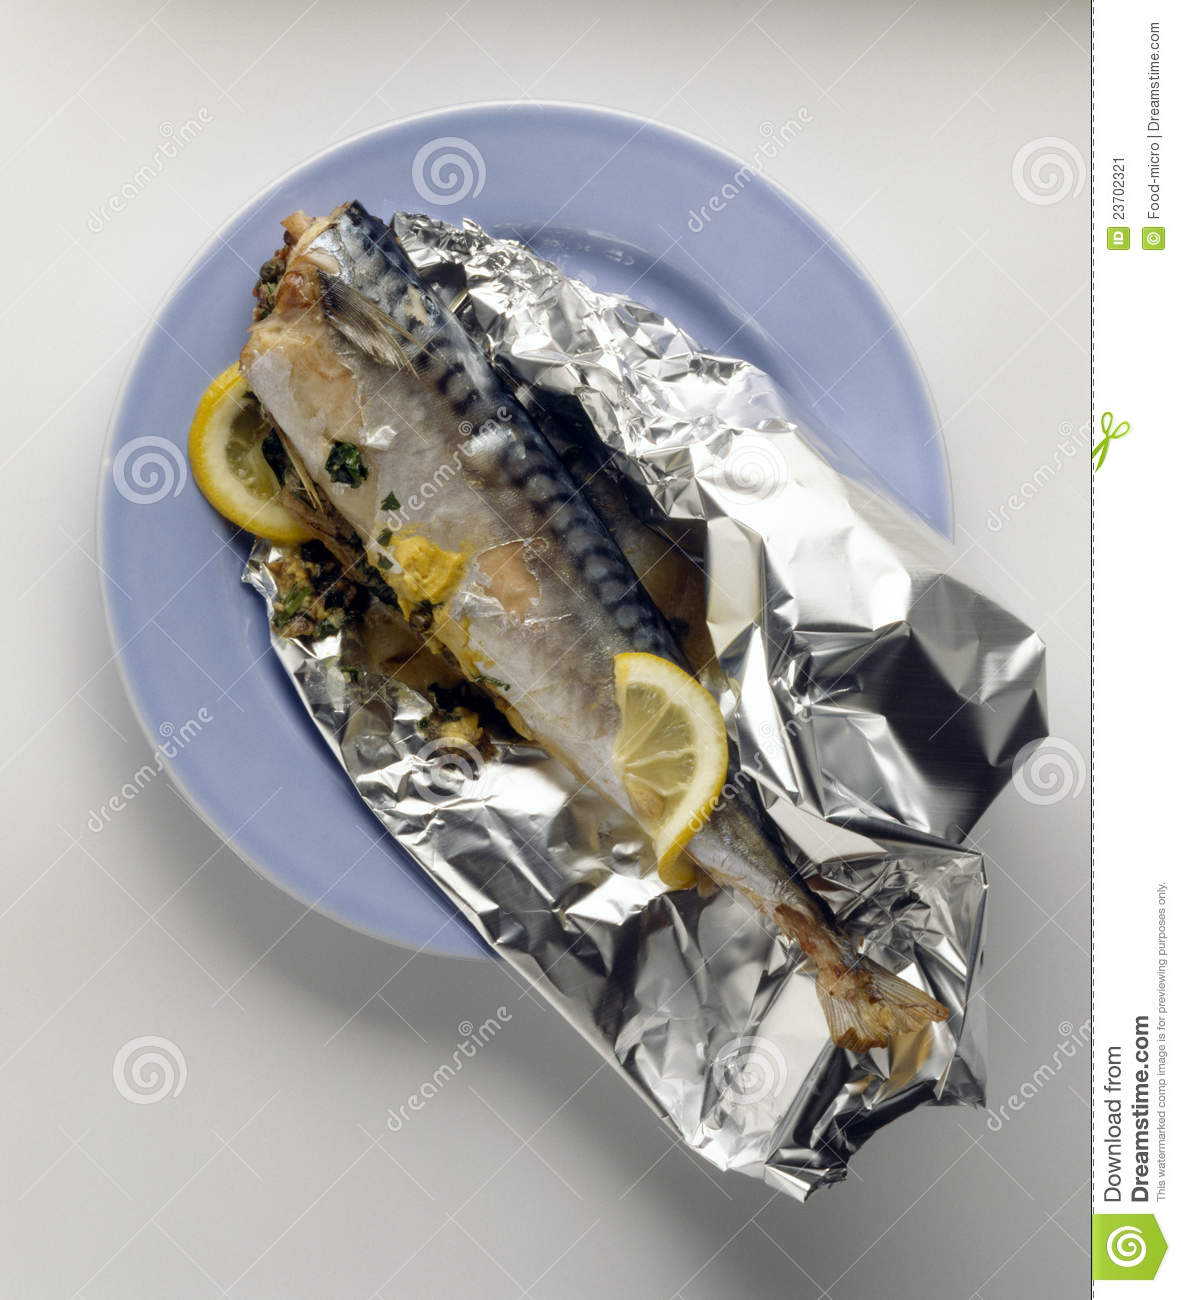 Mackerel cooked in aluminium foil stock image image for Cuisine aluminium